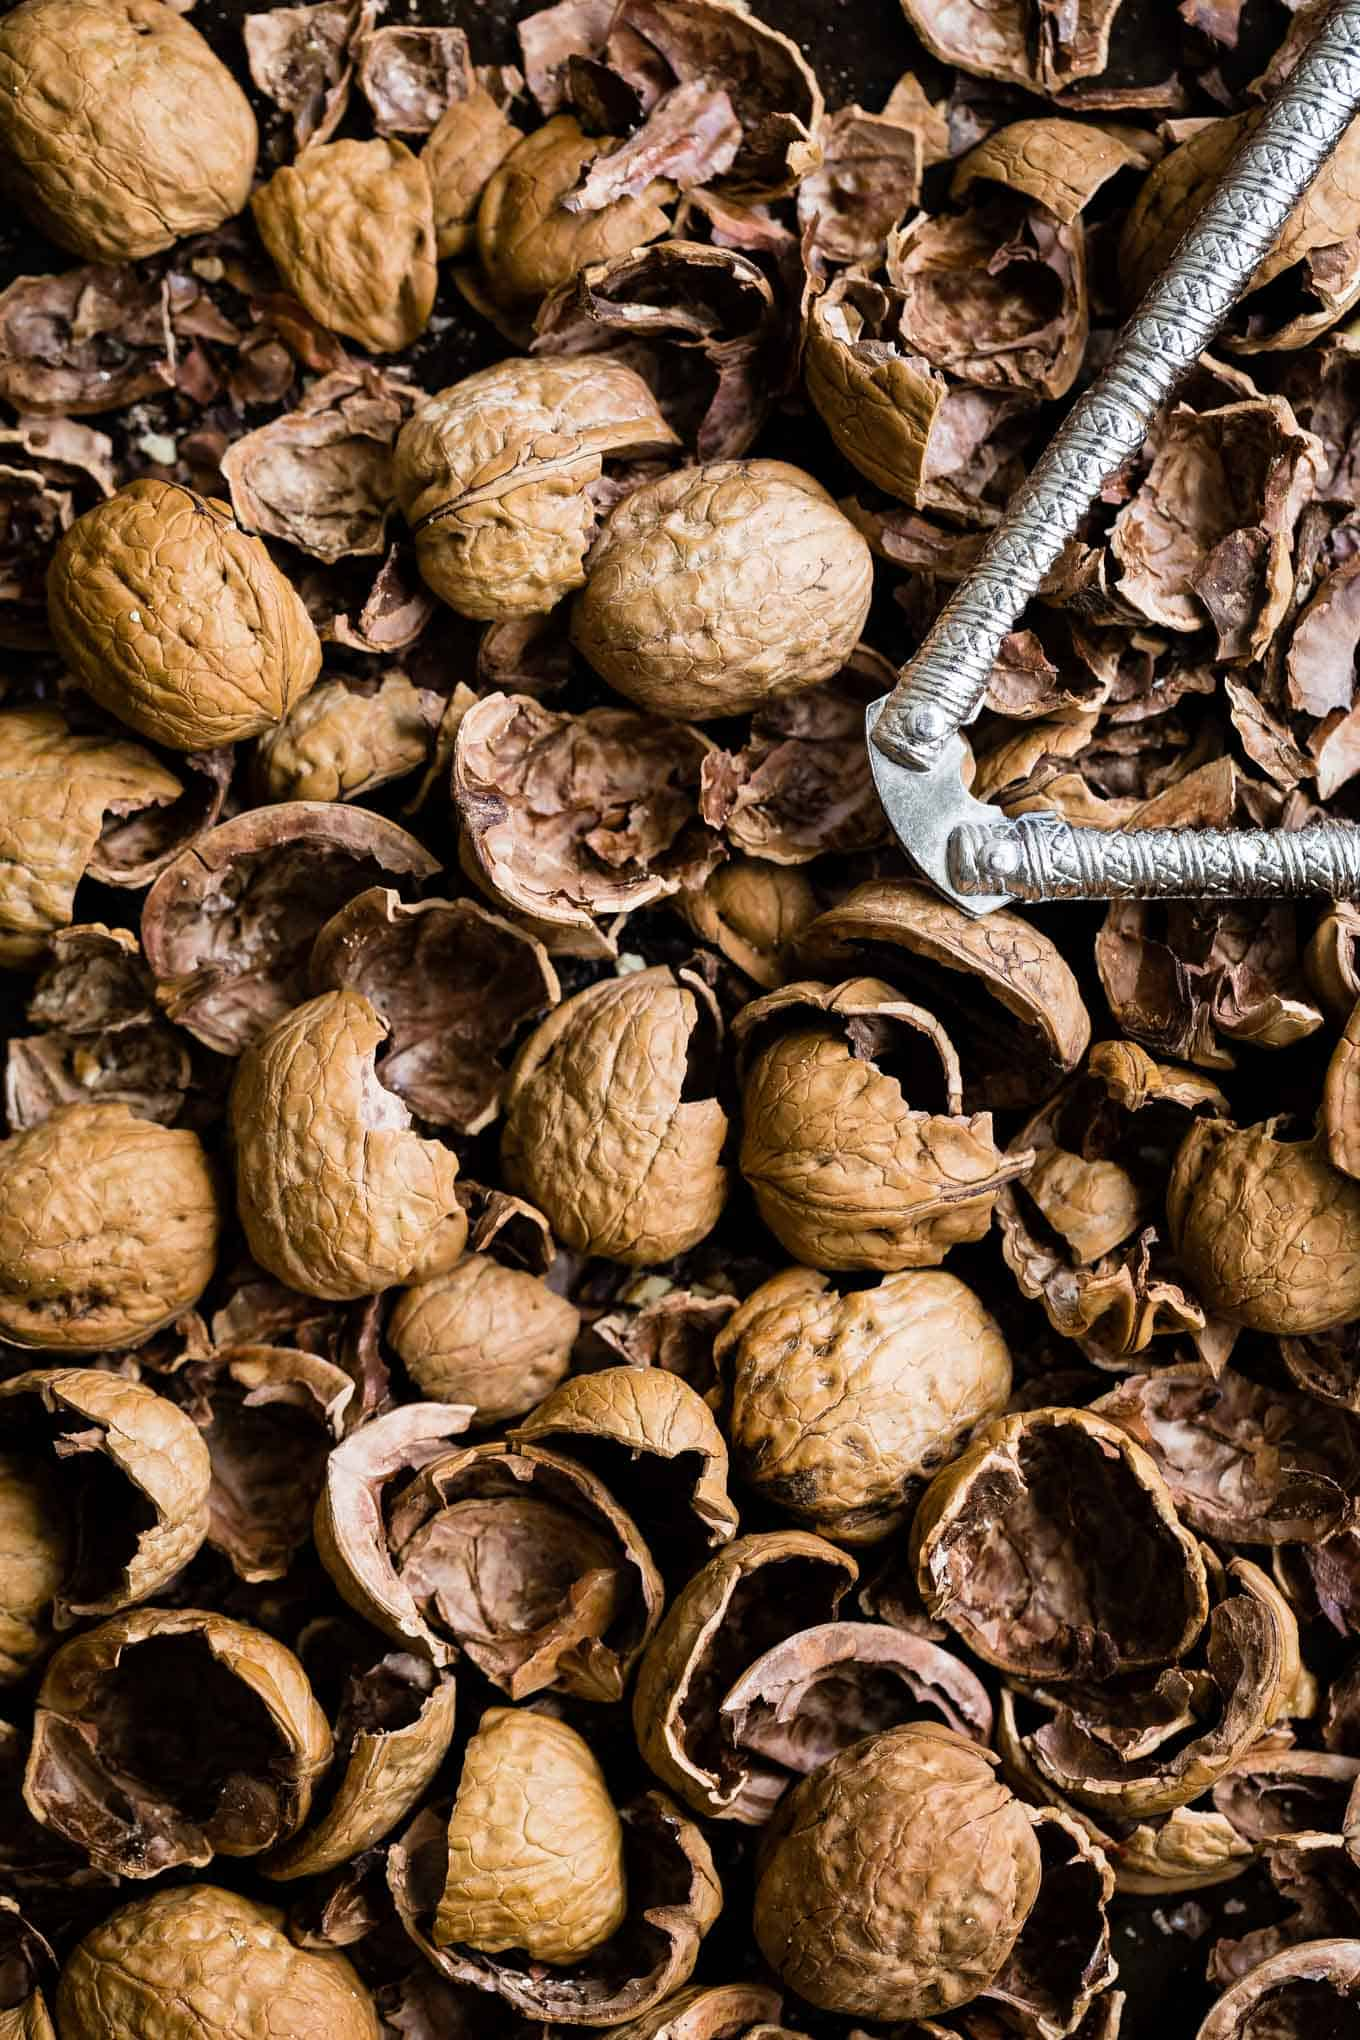 Whole Roasted Walnuts